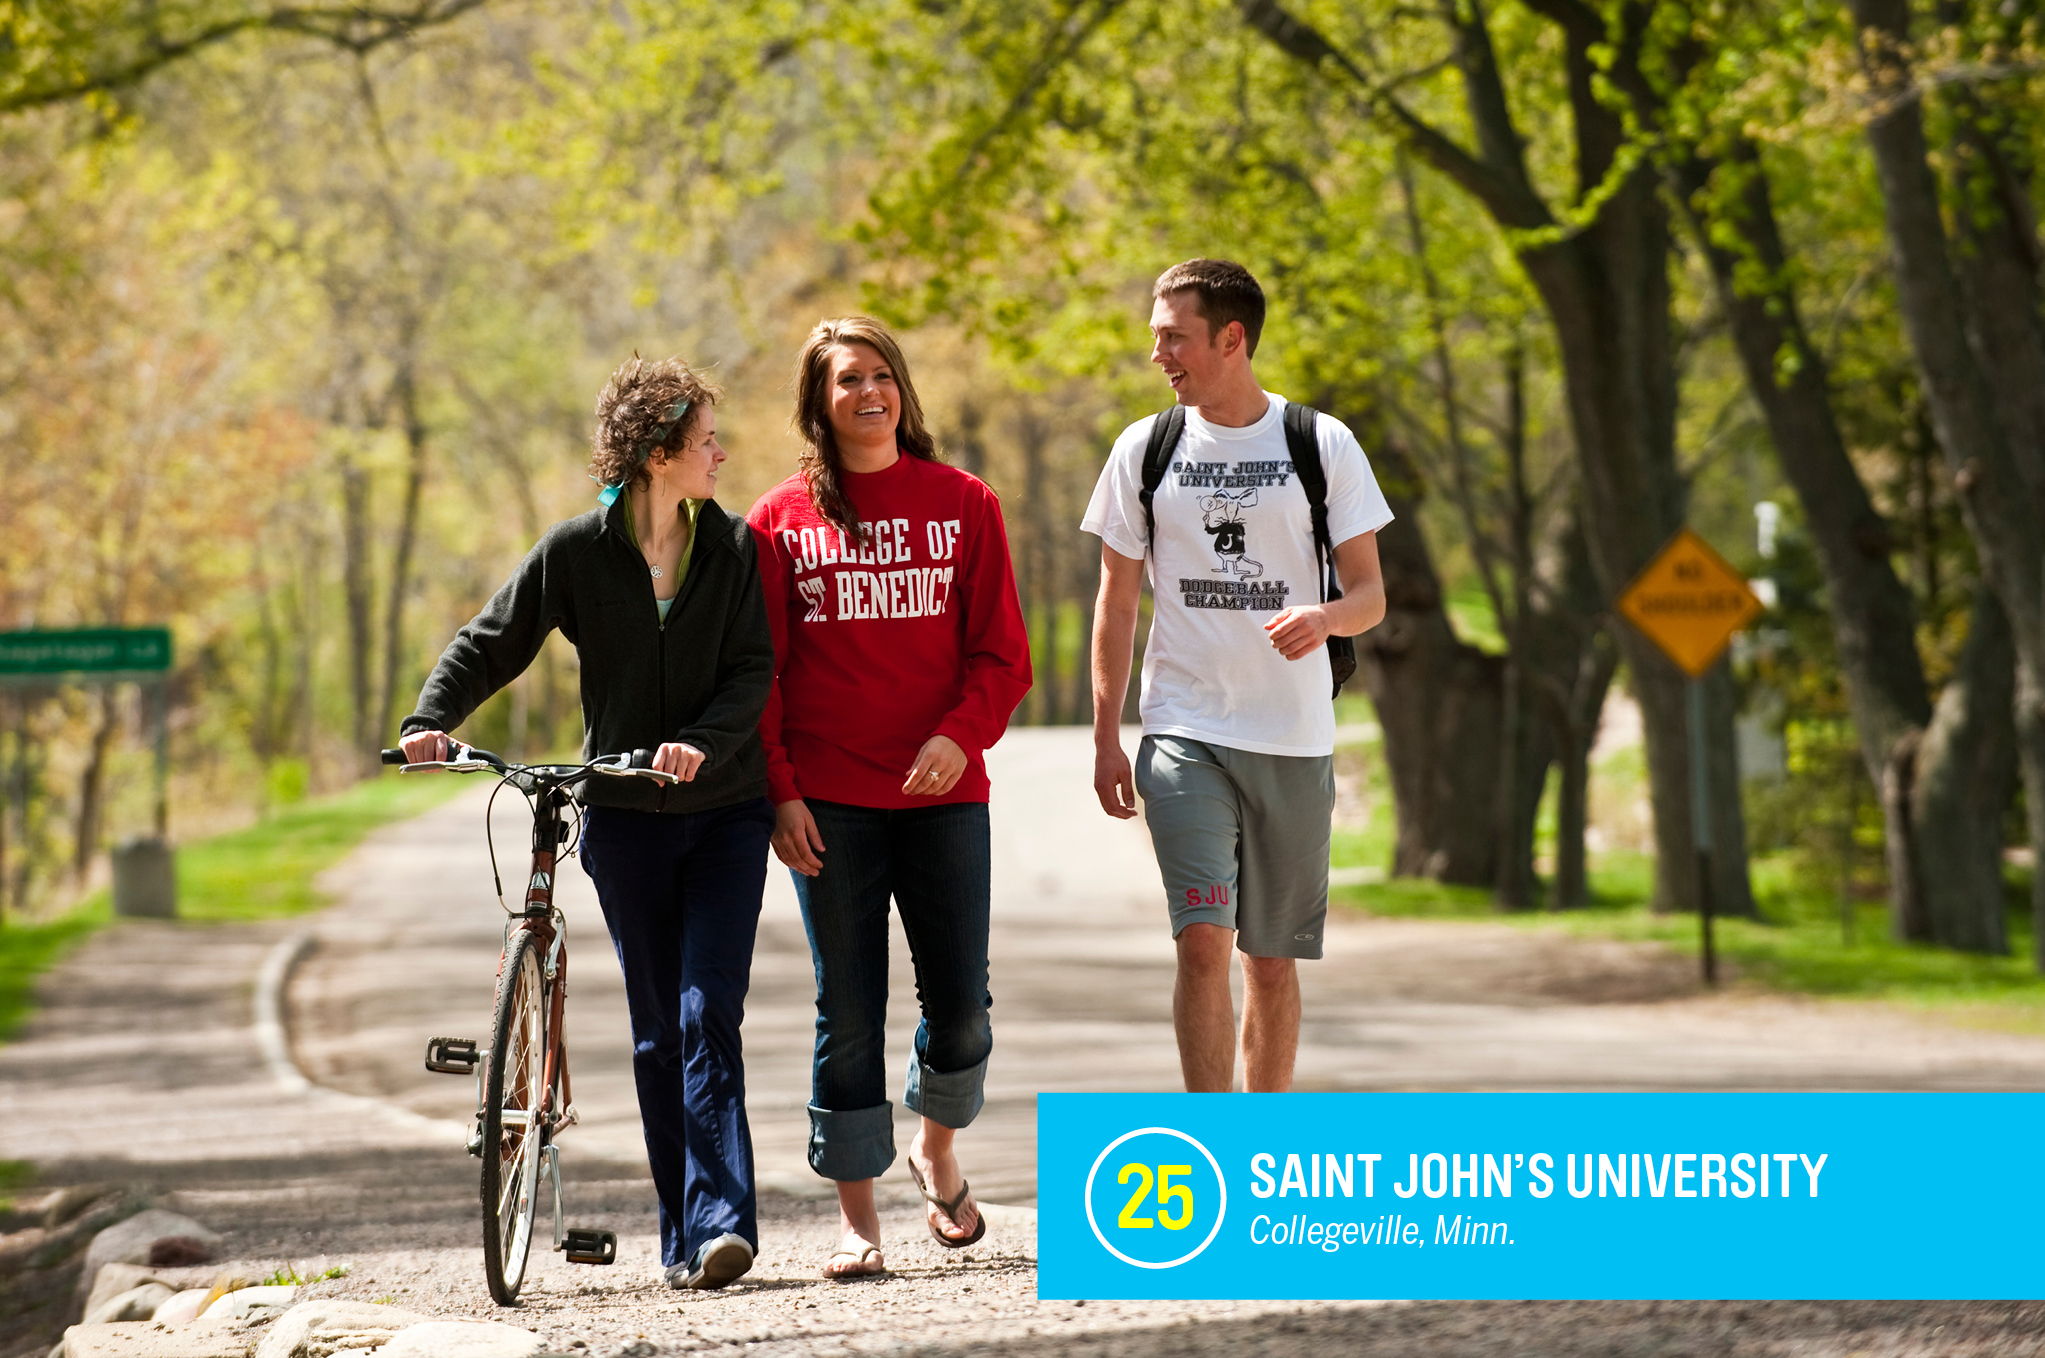 "<a href=""https://money.com/best-colleges/profile/saint-johns-university/"" target=""_blank"">Saint John's University</a> is a Catholic school for men that partners with a nearby women's school, College of Saint Benedict, to share academic programs and campuses resources. Nearly 80% of students at Saint John's graduate within six years, 12% higher than similar schools. <a href=""https://money.com/best-colleges/profile/saint-johns-university/"" target=""_blank"">FULL PROFILE</a>"